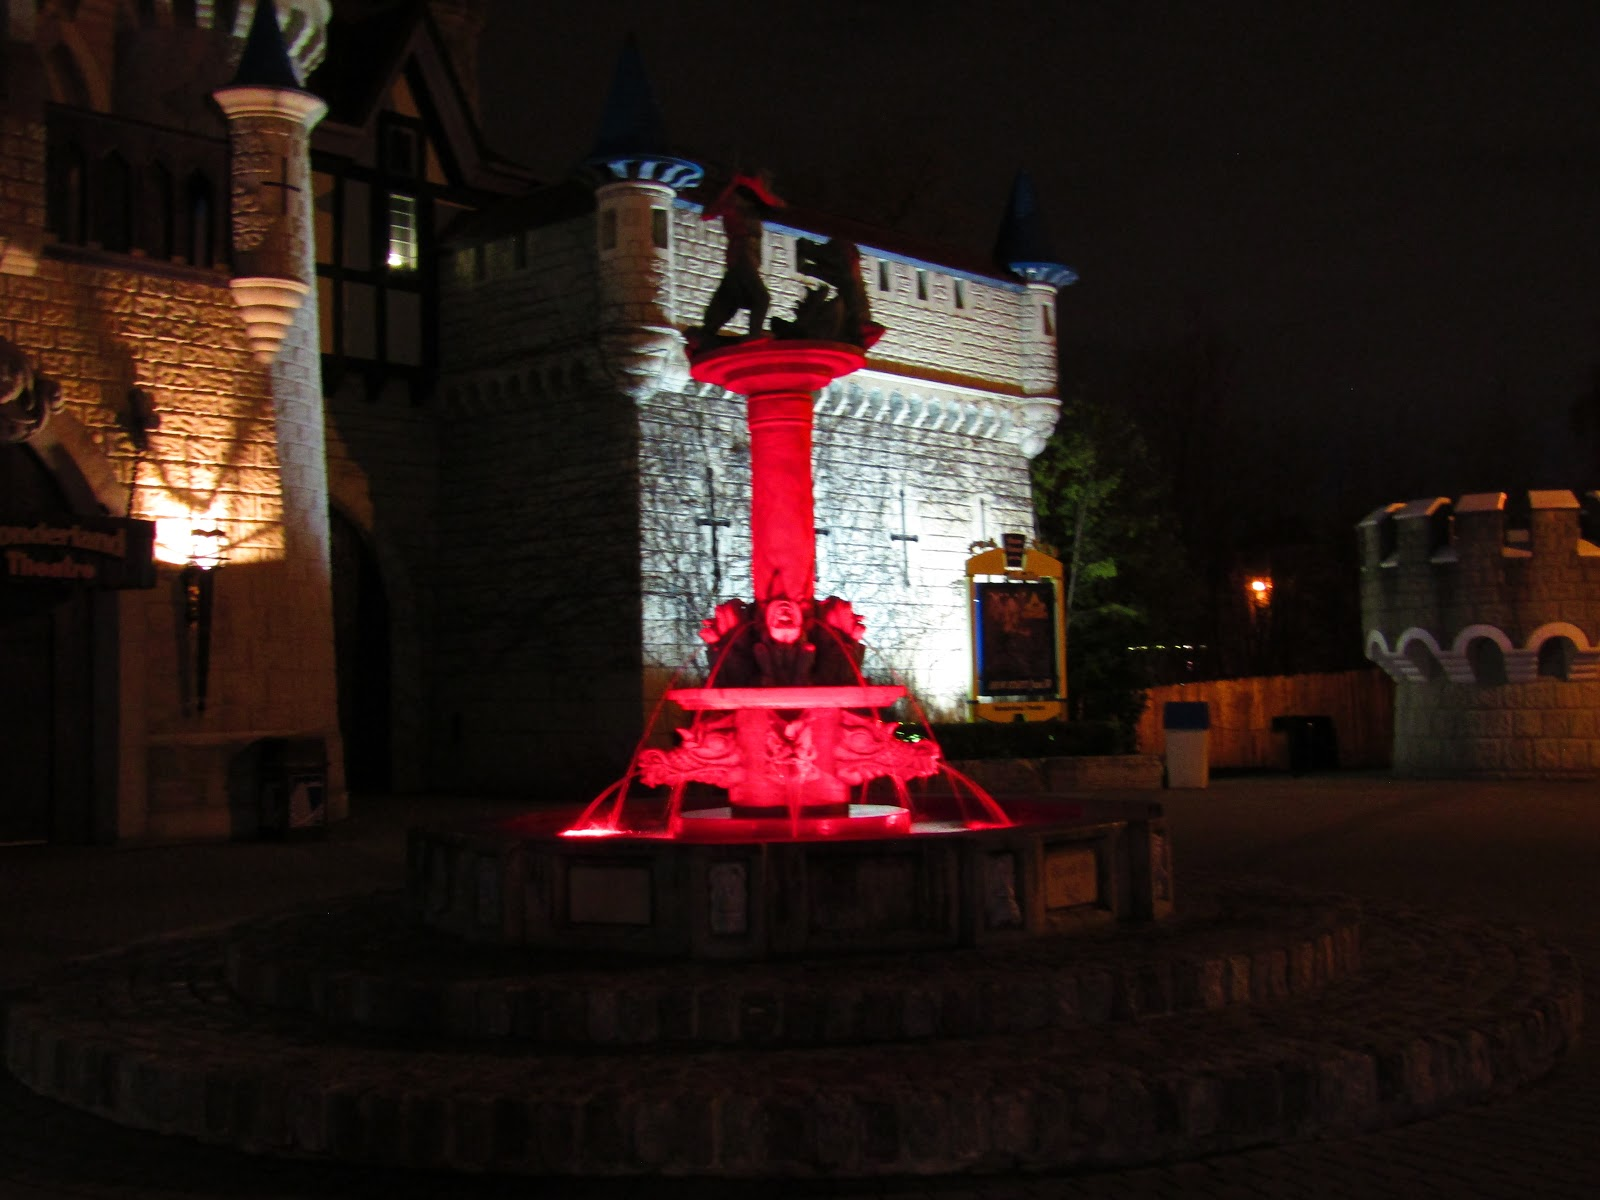 The Medieval Faire Fountain illuminated by red lights at night.